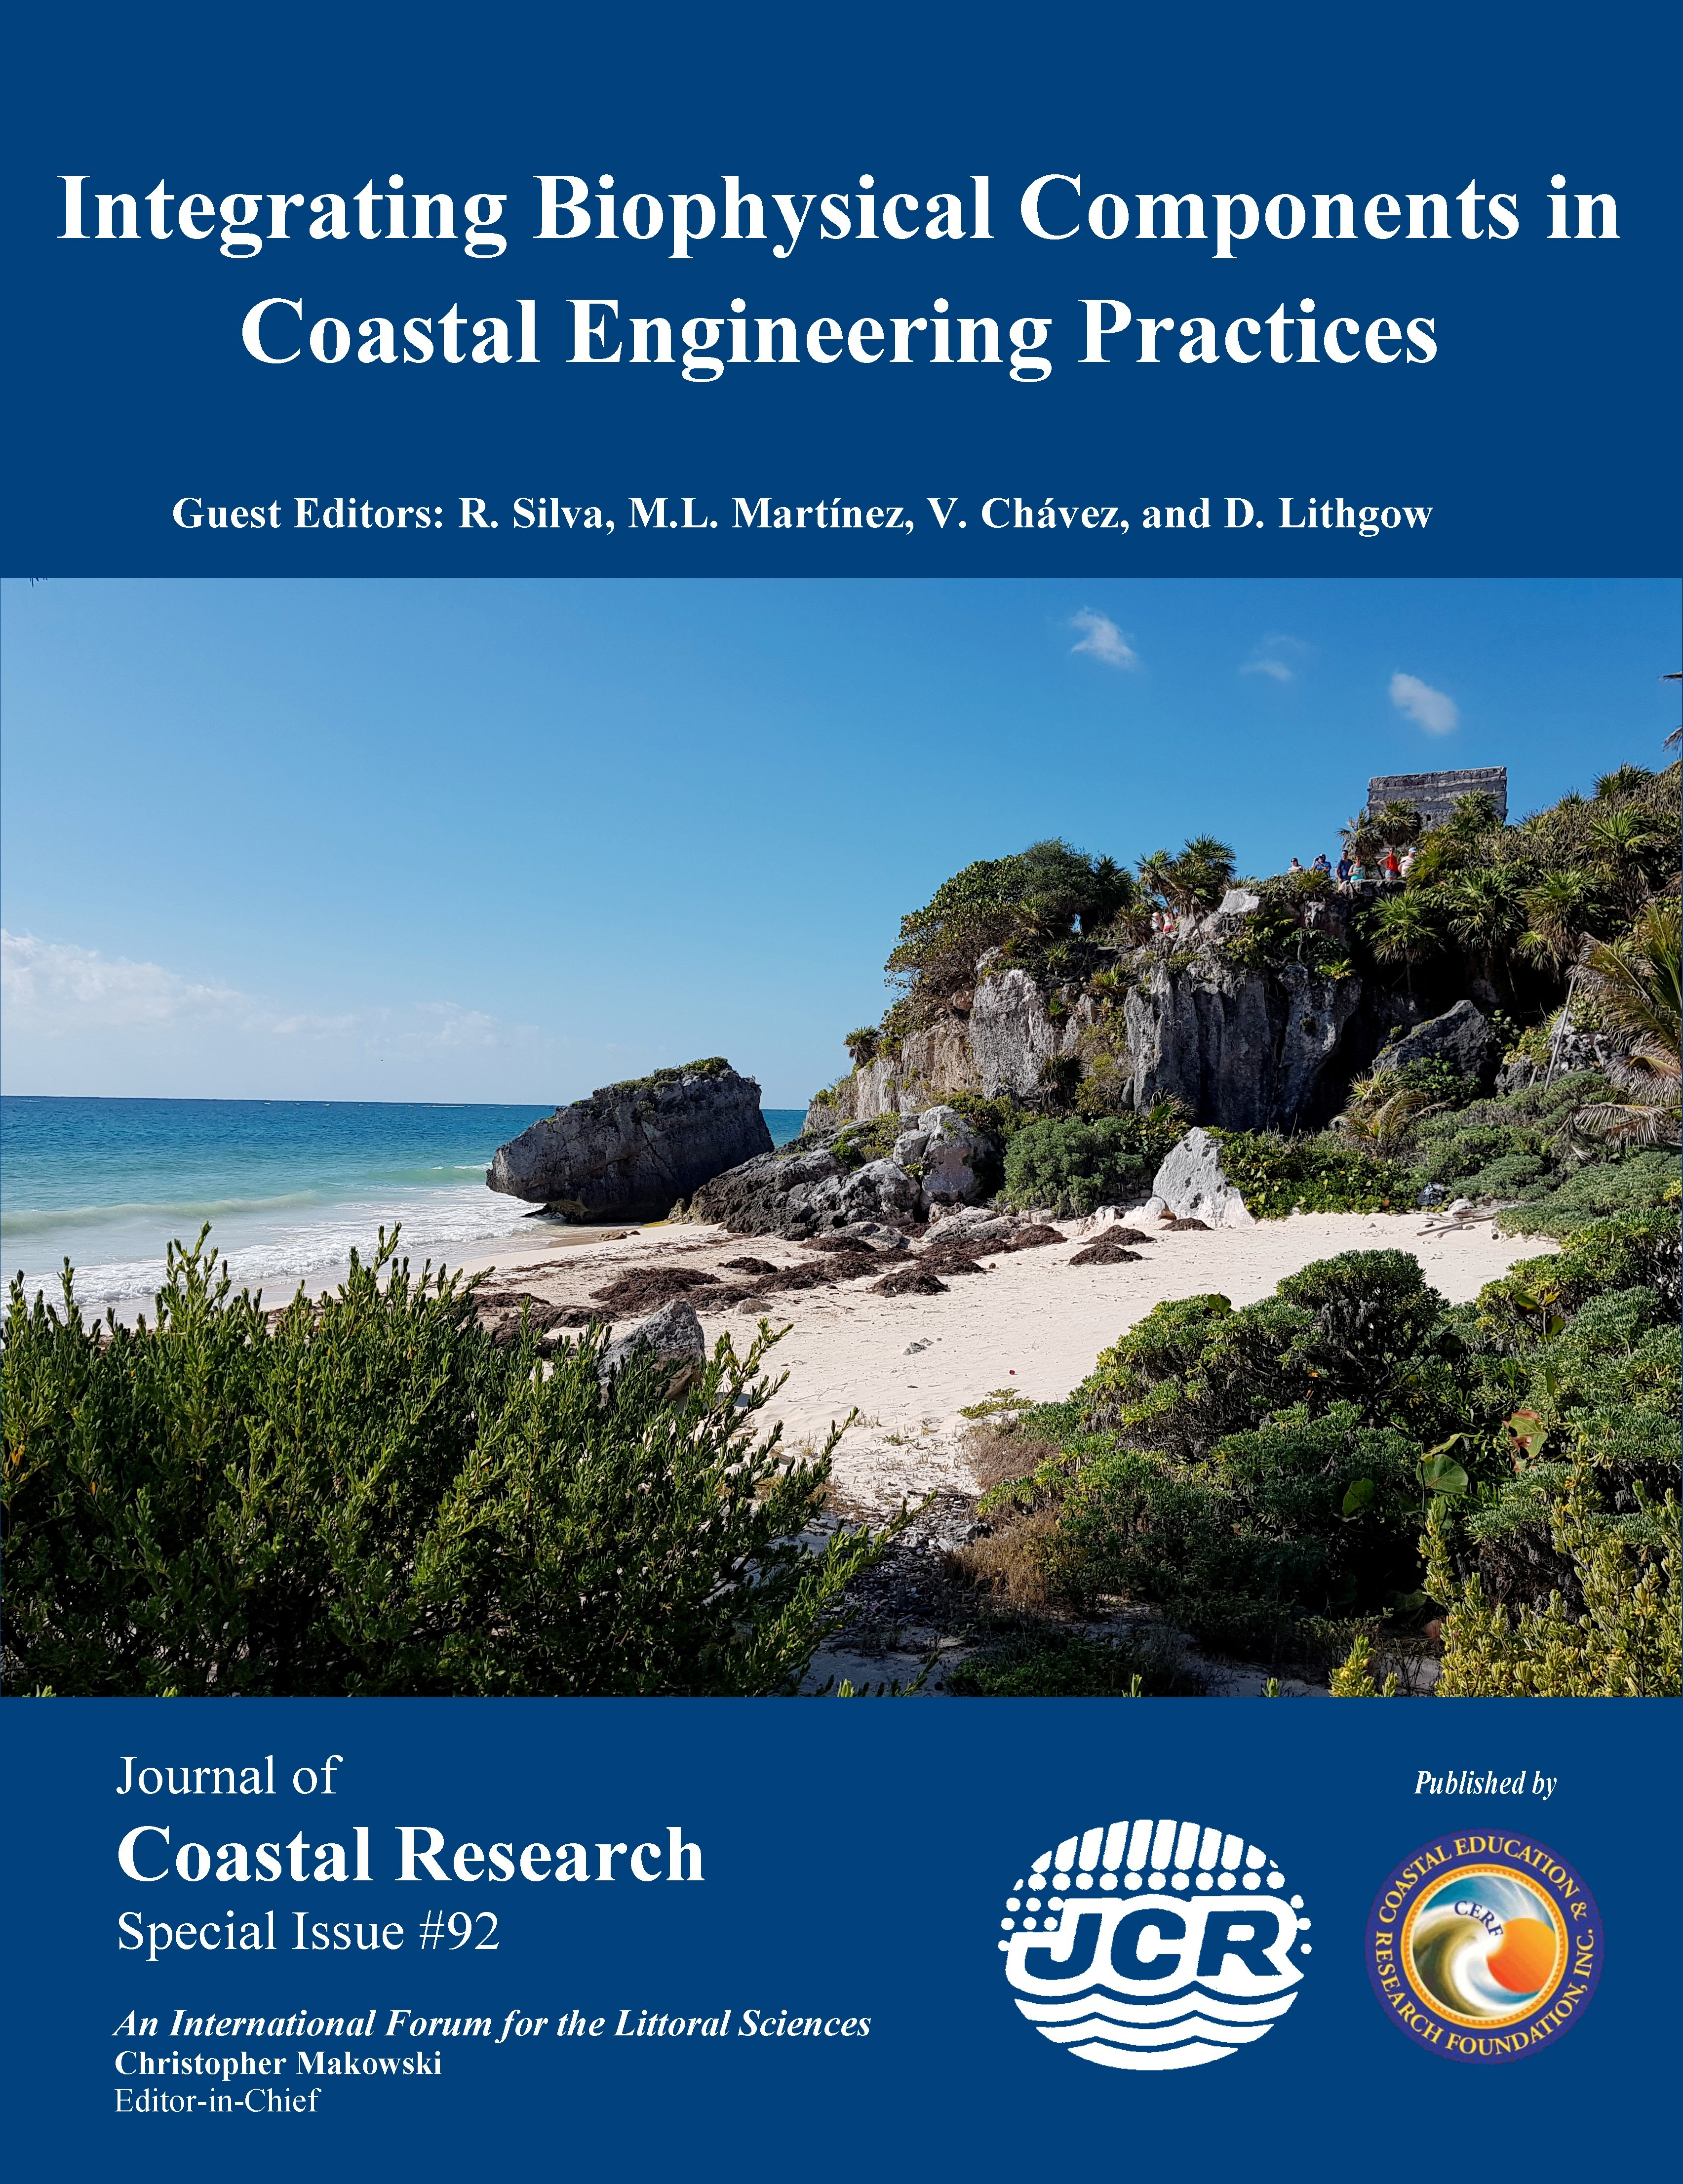 #92 Integrating Biophysical Components in Coastal Engineering Practices